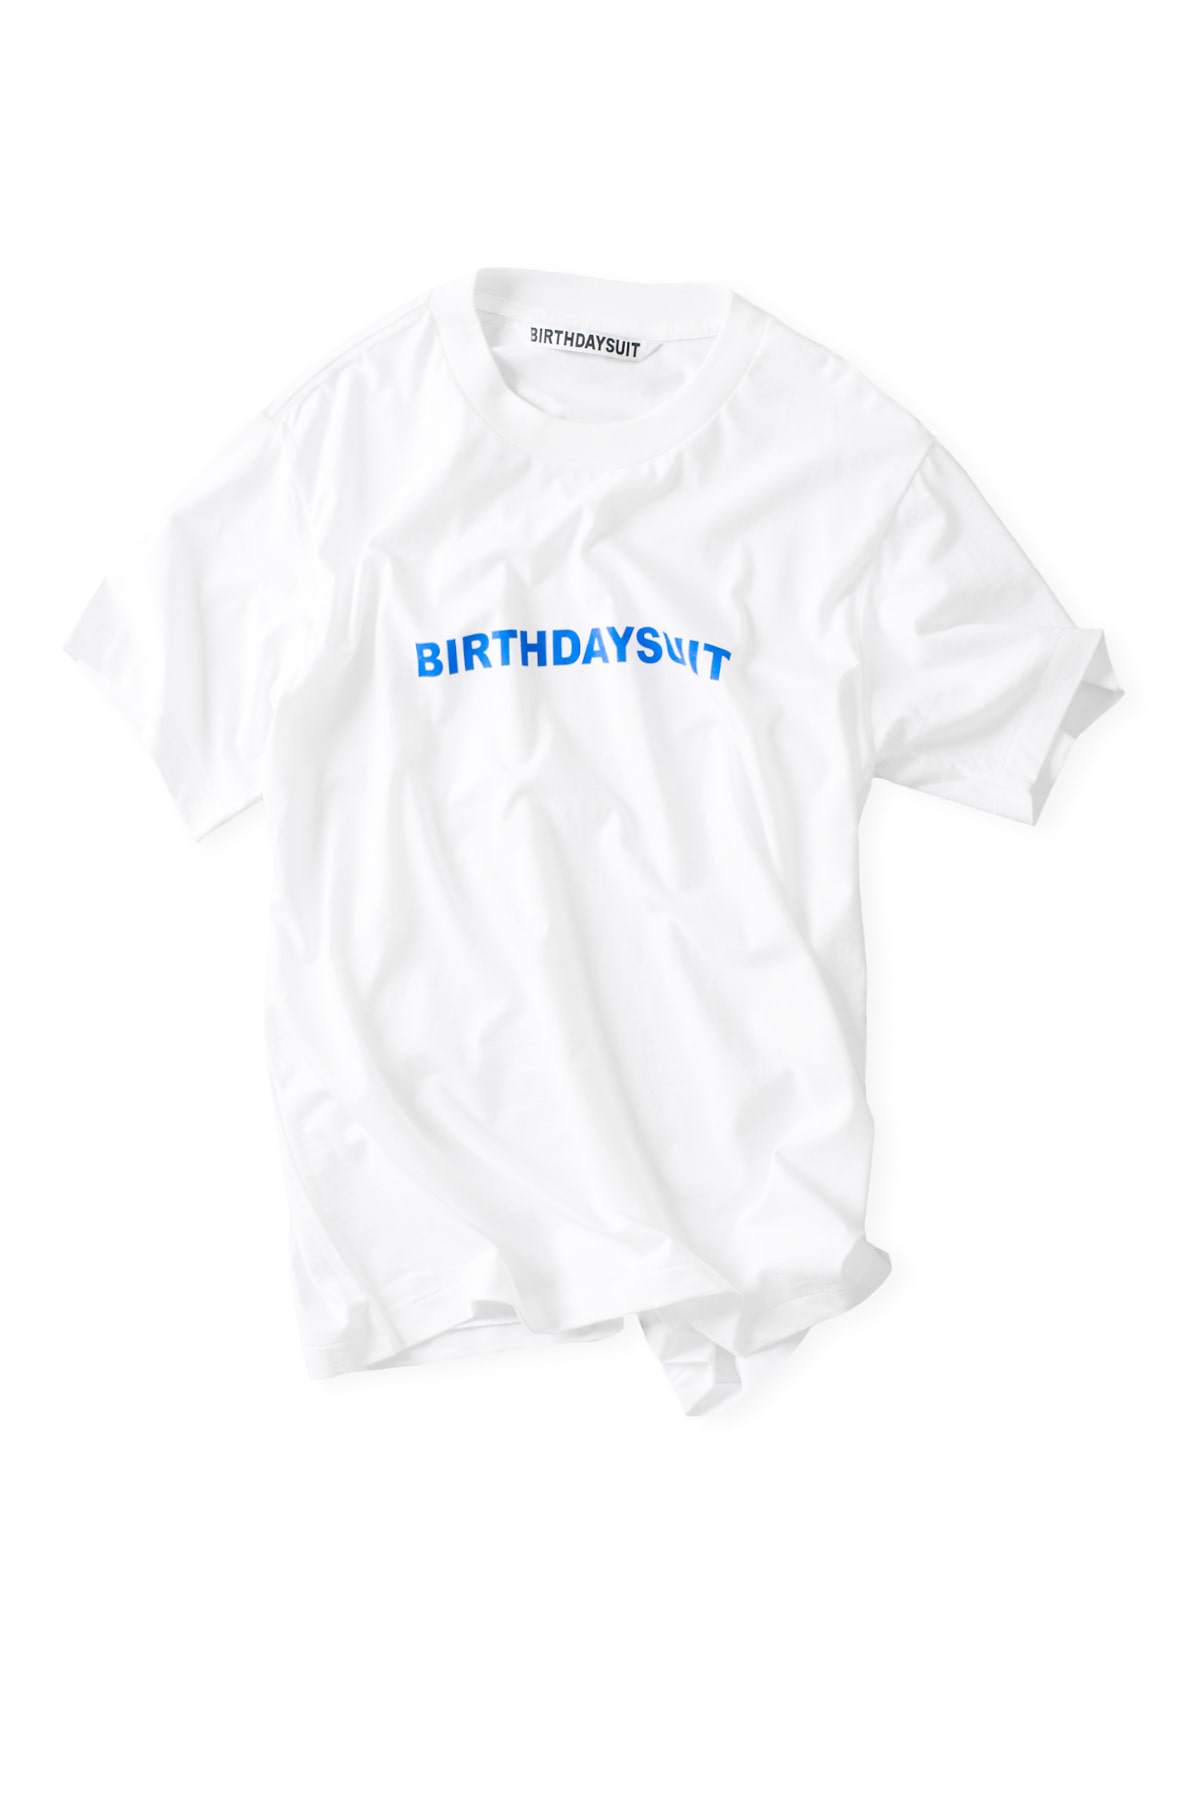 BIRTHDAYSUIT : LOGO Tee (Pocari)